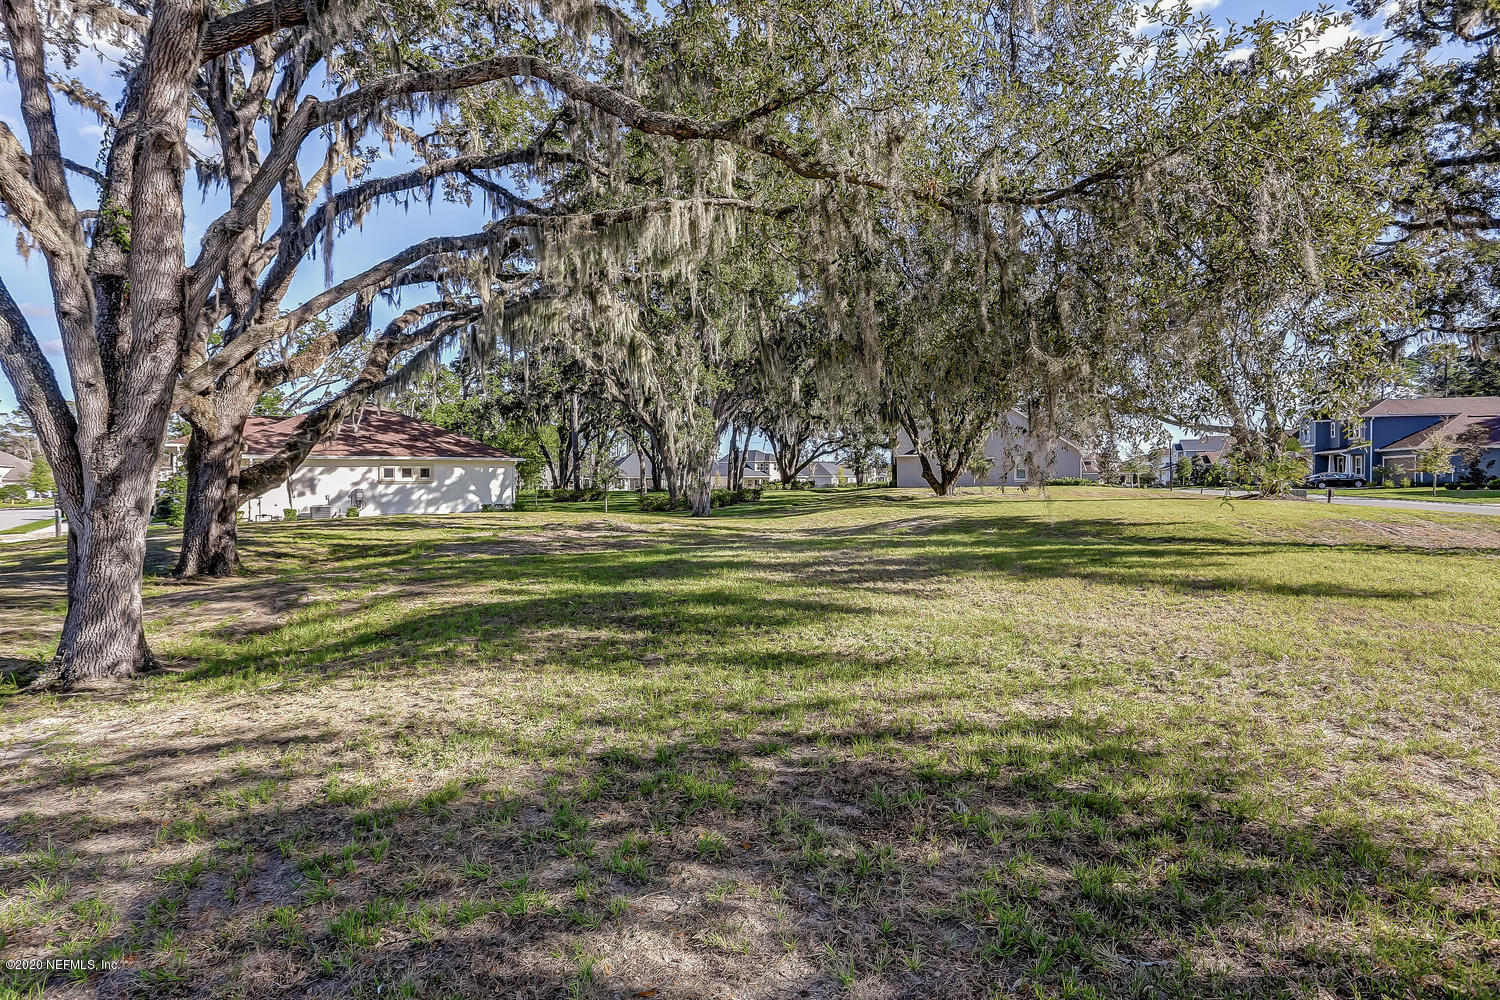 8601 HOMEPLACE, JACKSONVILLE, FLORIDA 32256, 3 Bedrooms Bedrooms, ,2 BathroomsBathrooms,Residential,For sale,HOMEPLACE,1050116